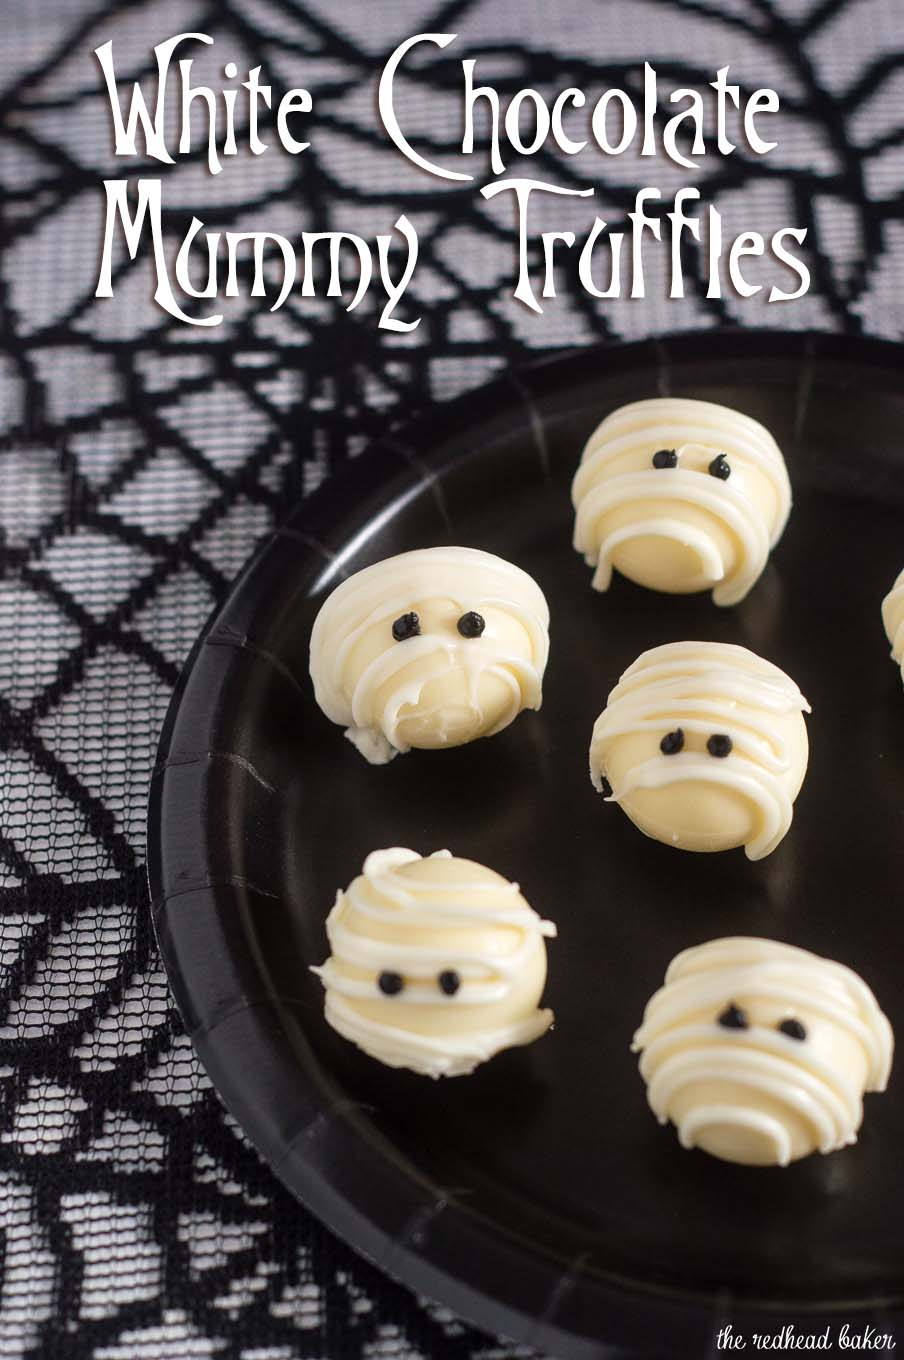 Boo! Scare your Halloween dinner or party guests with these easy-to-make white chocolate mummy truffles made with white chocolate ganache! #ProgressiveEats